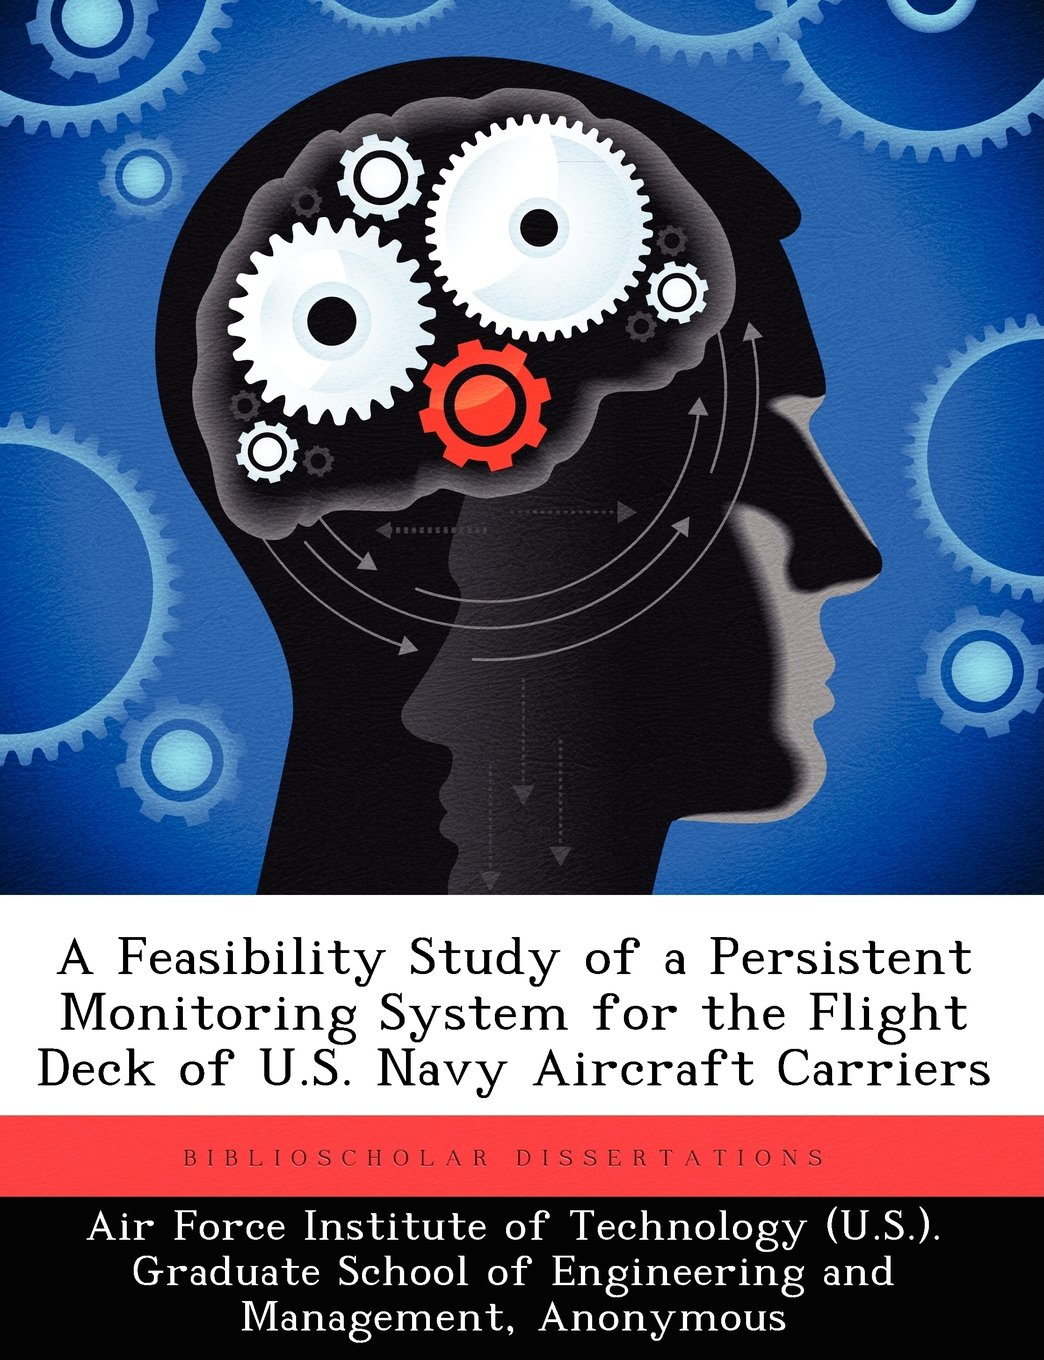 A Feasibility Study of a Persistent Monitoring System for the Flight Deck of U.S. Navy Aircraft Carriers pdf